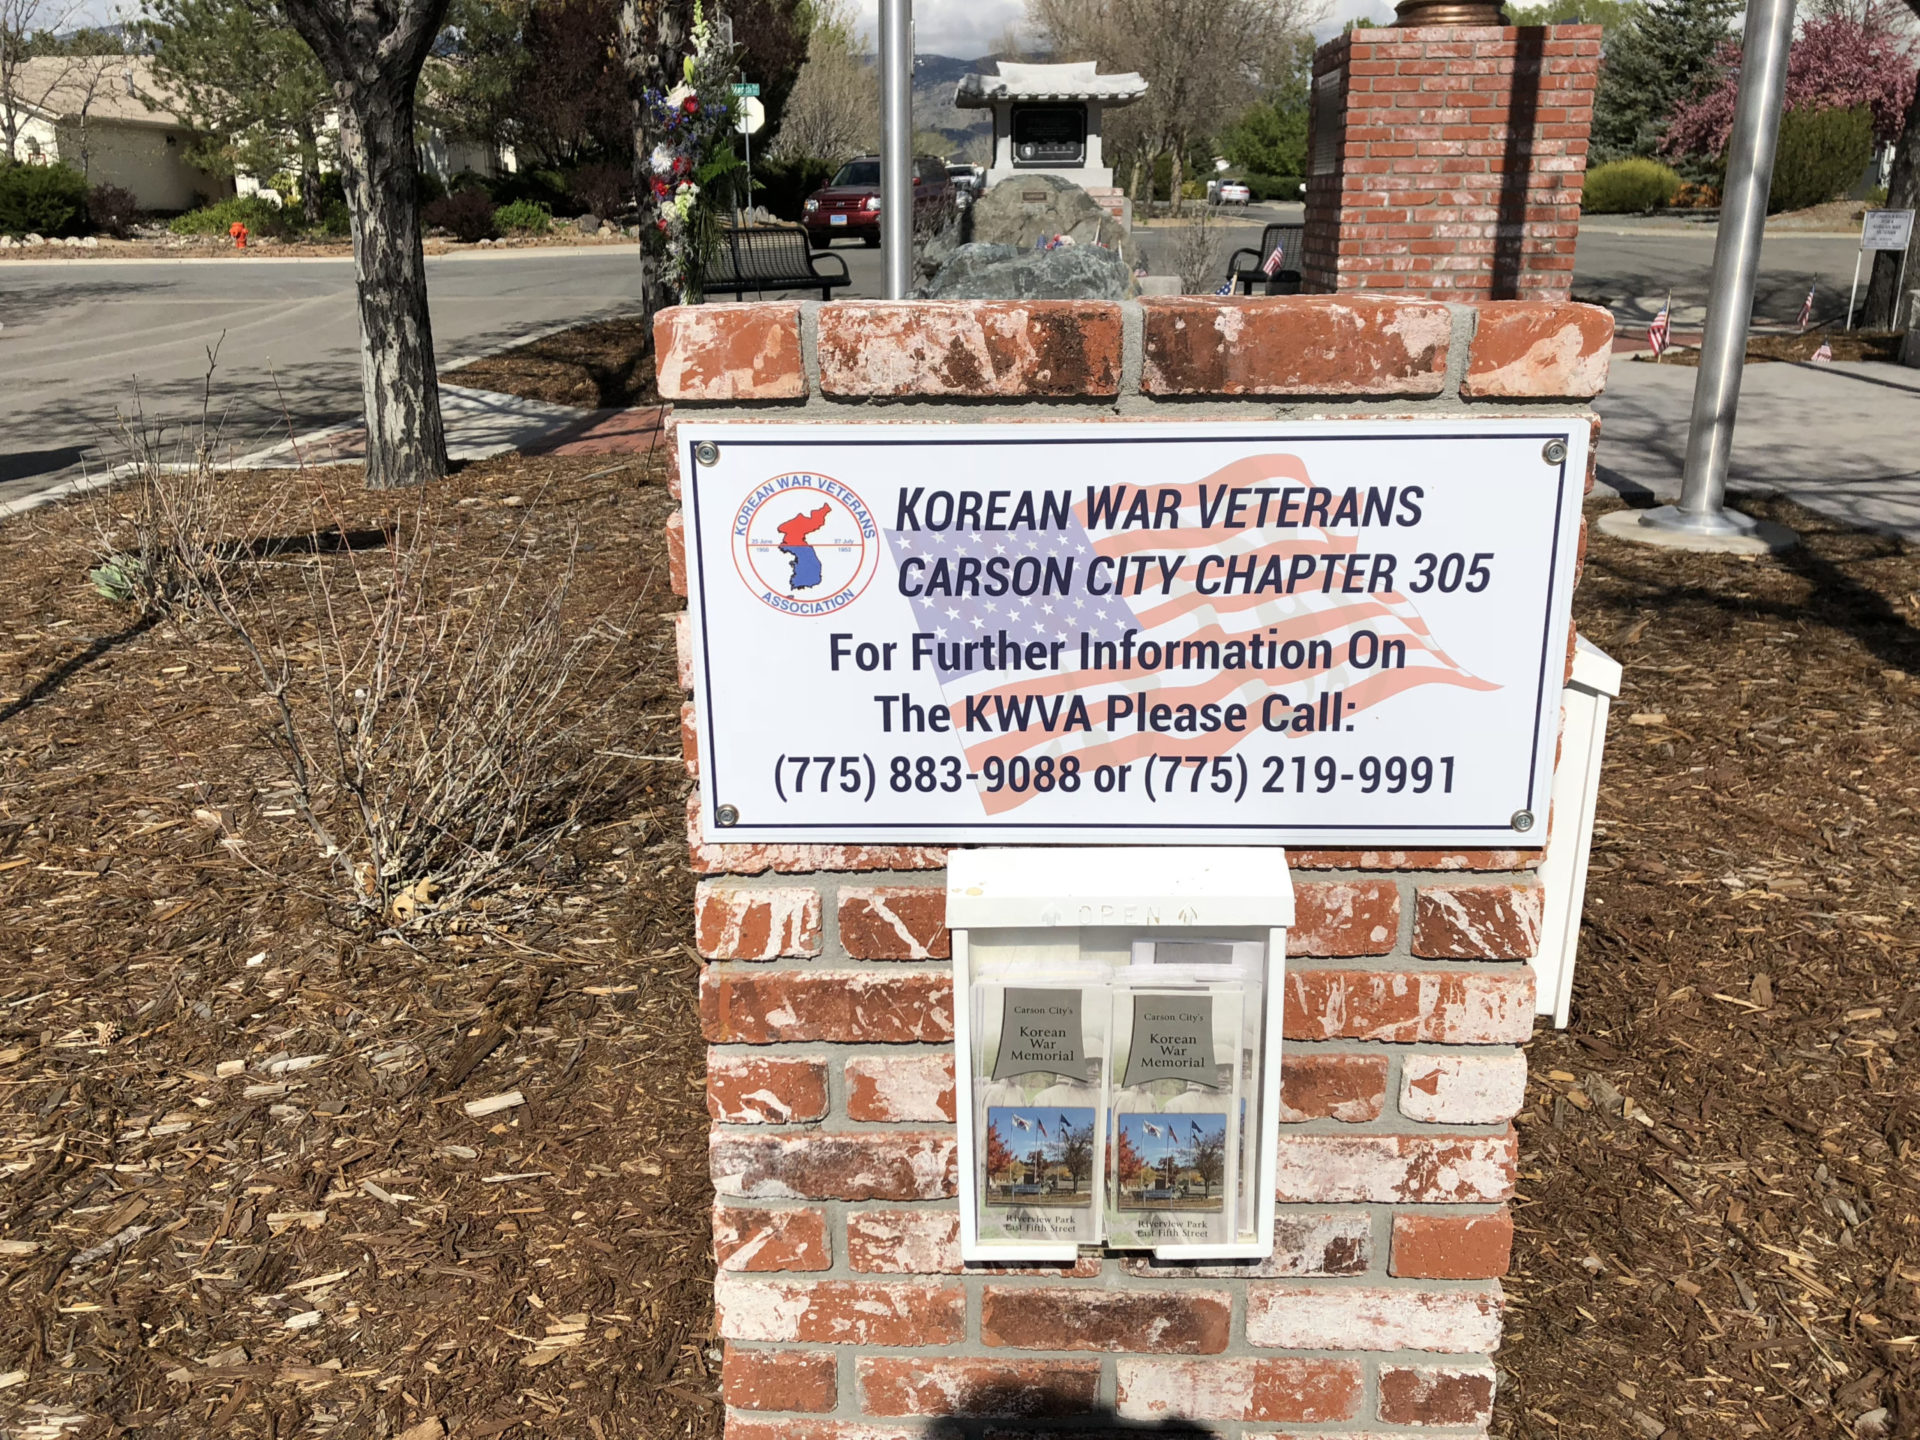 Korean War Memorials - Carson City